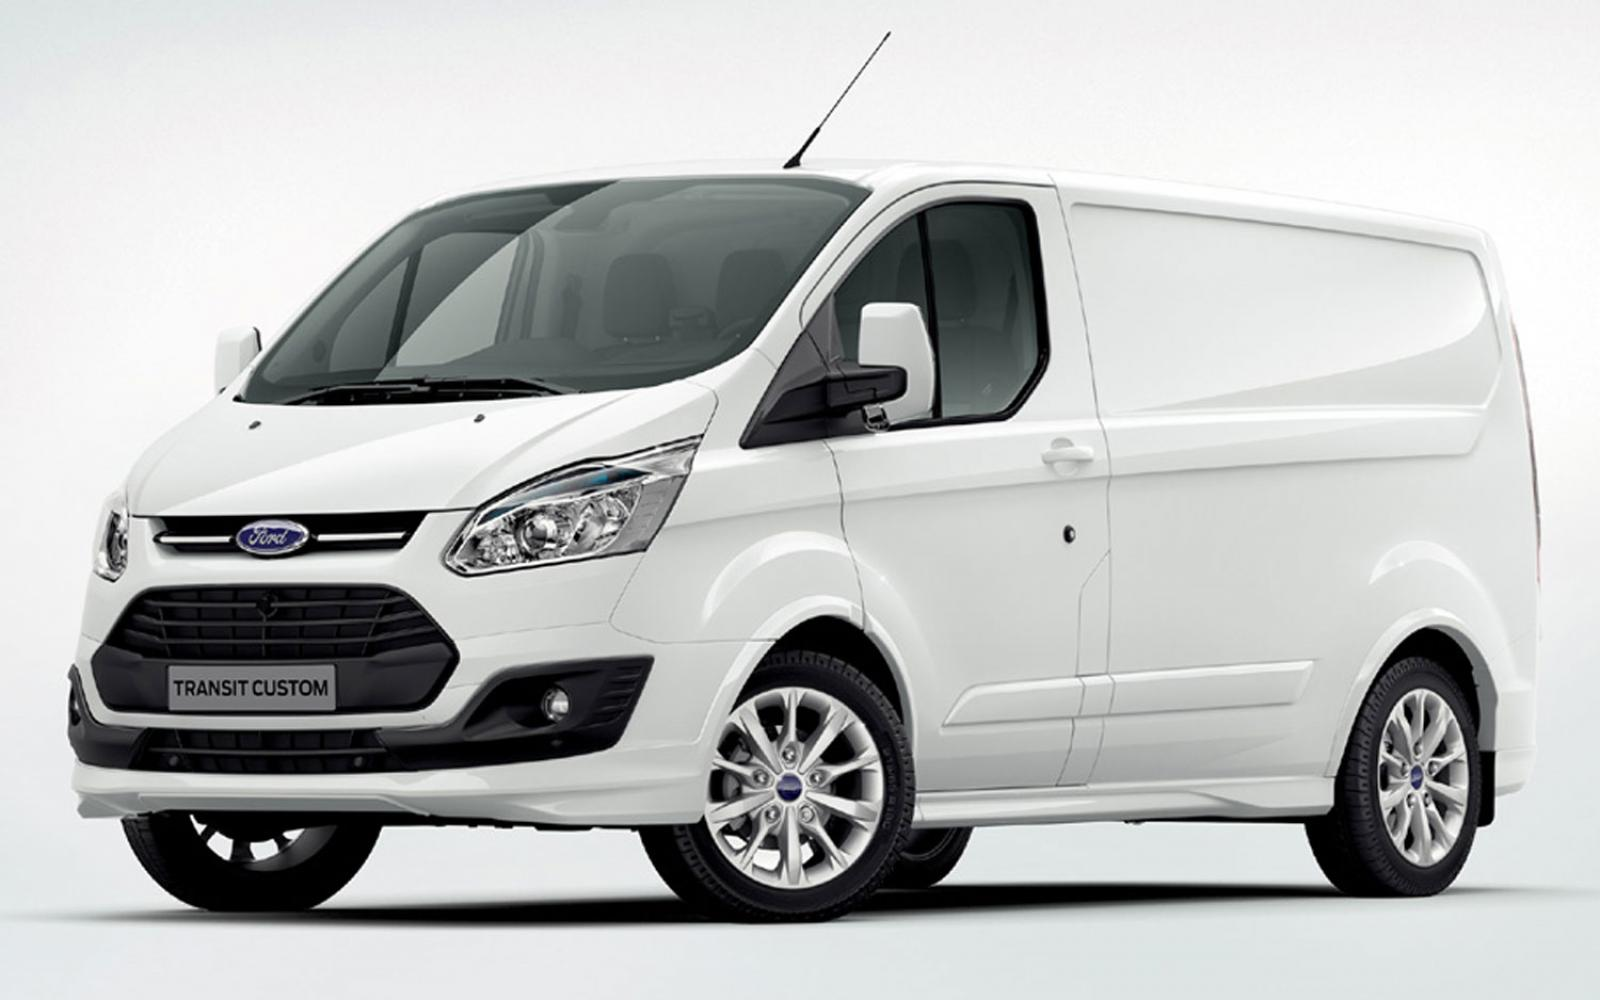 2015 ford transit van 1600px image 15. Black Bedroom Furniture Sets. Home Design Ideas